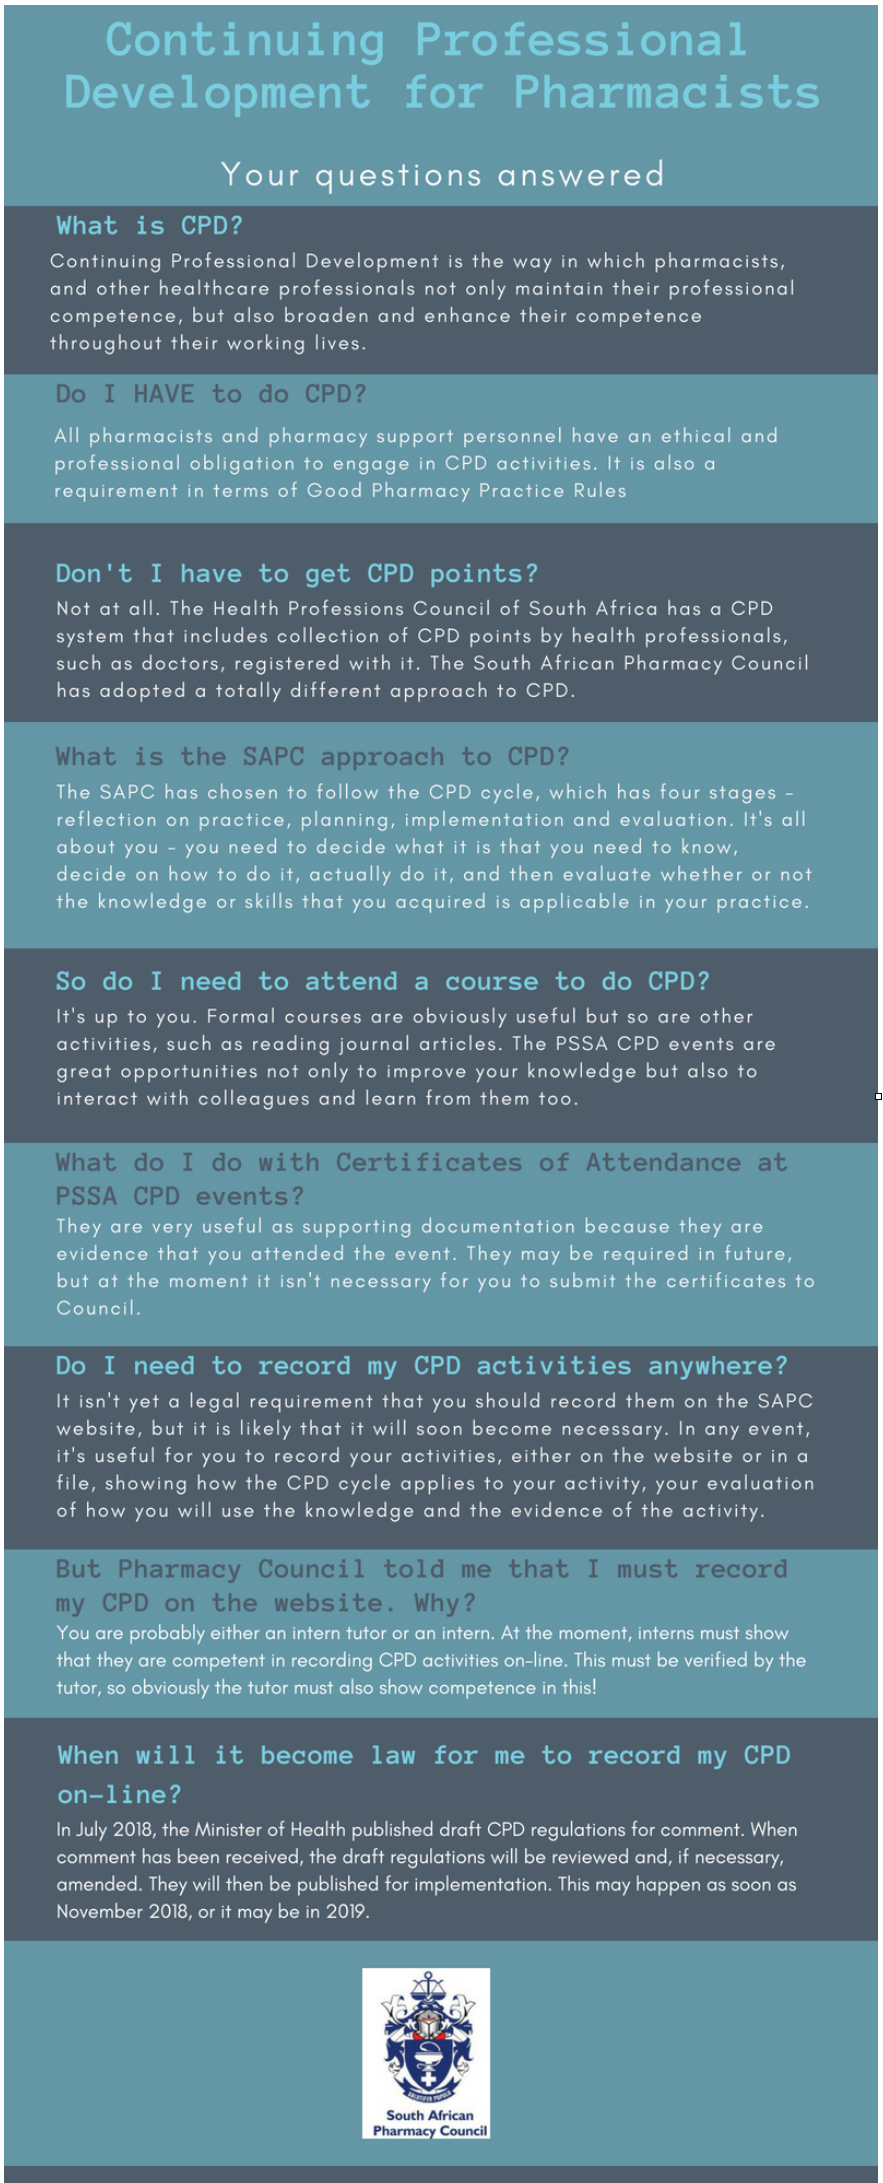 Pharmaciae - SAPC - Infographic on frequently asked questions relating to CPD